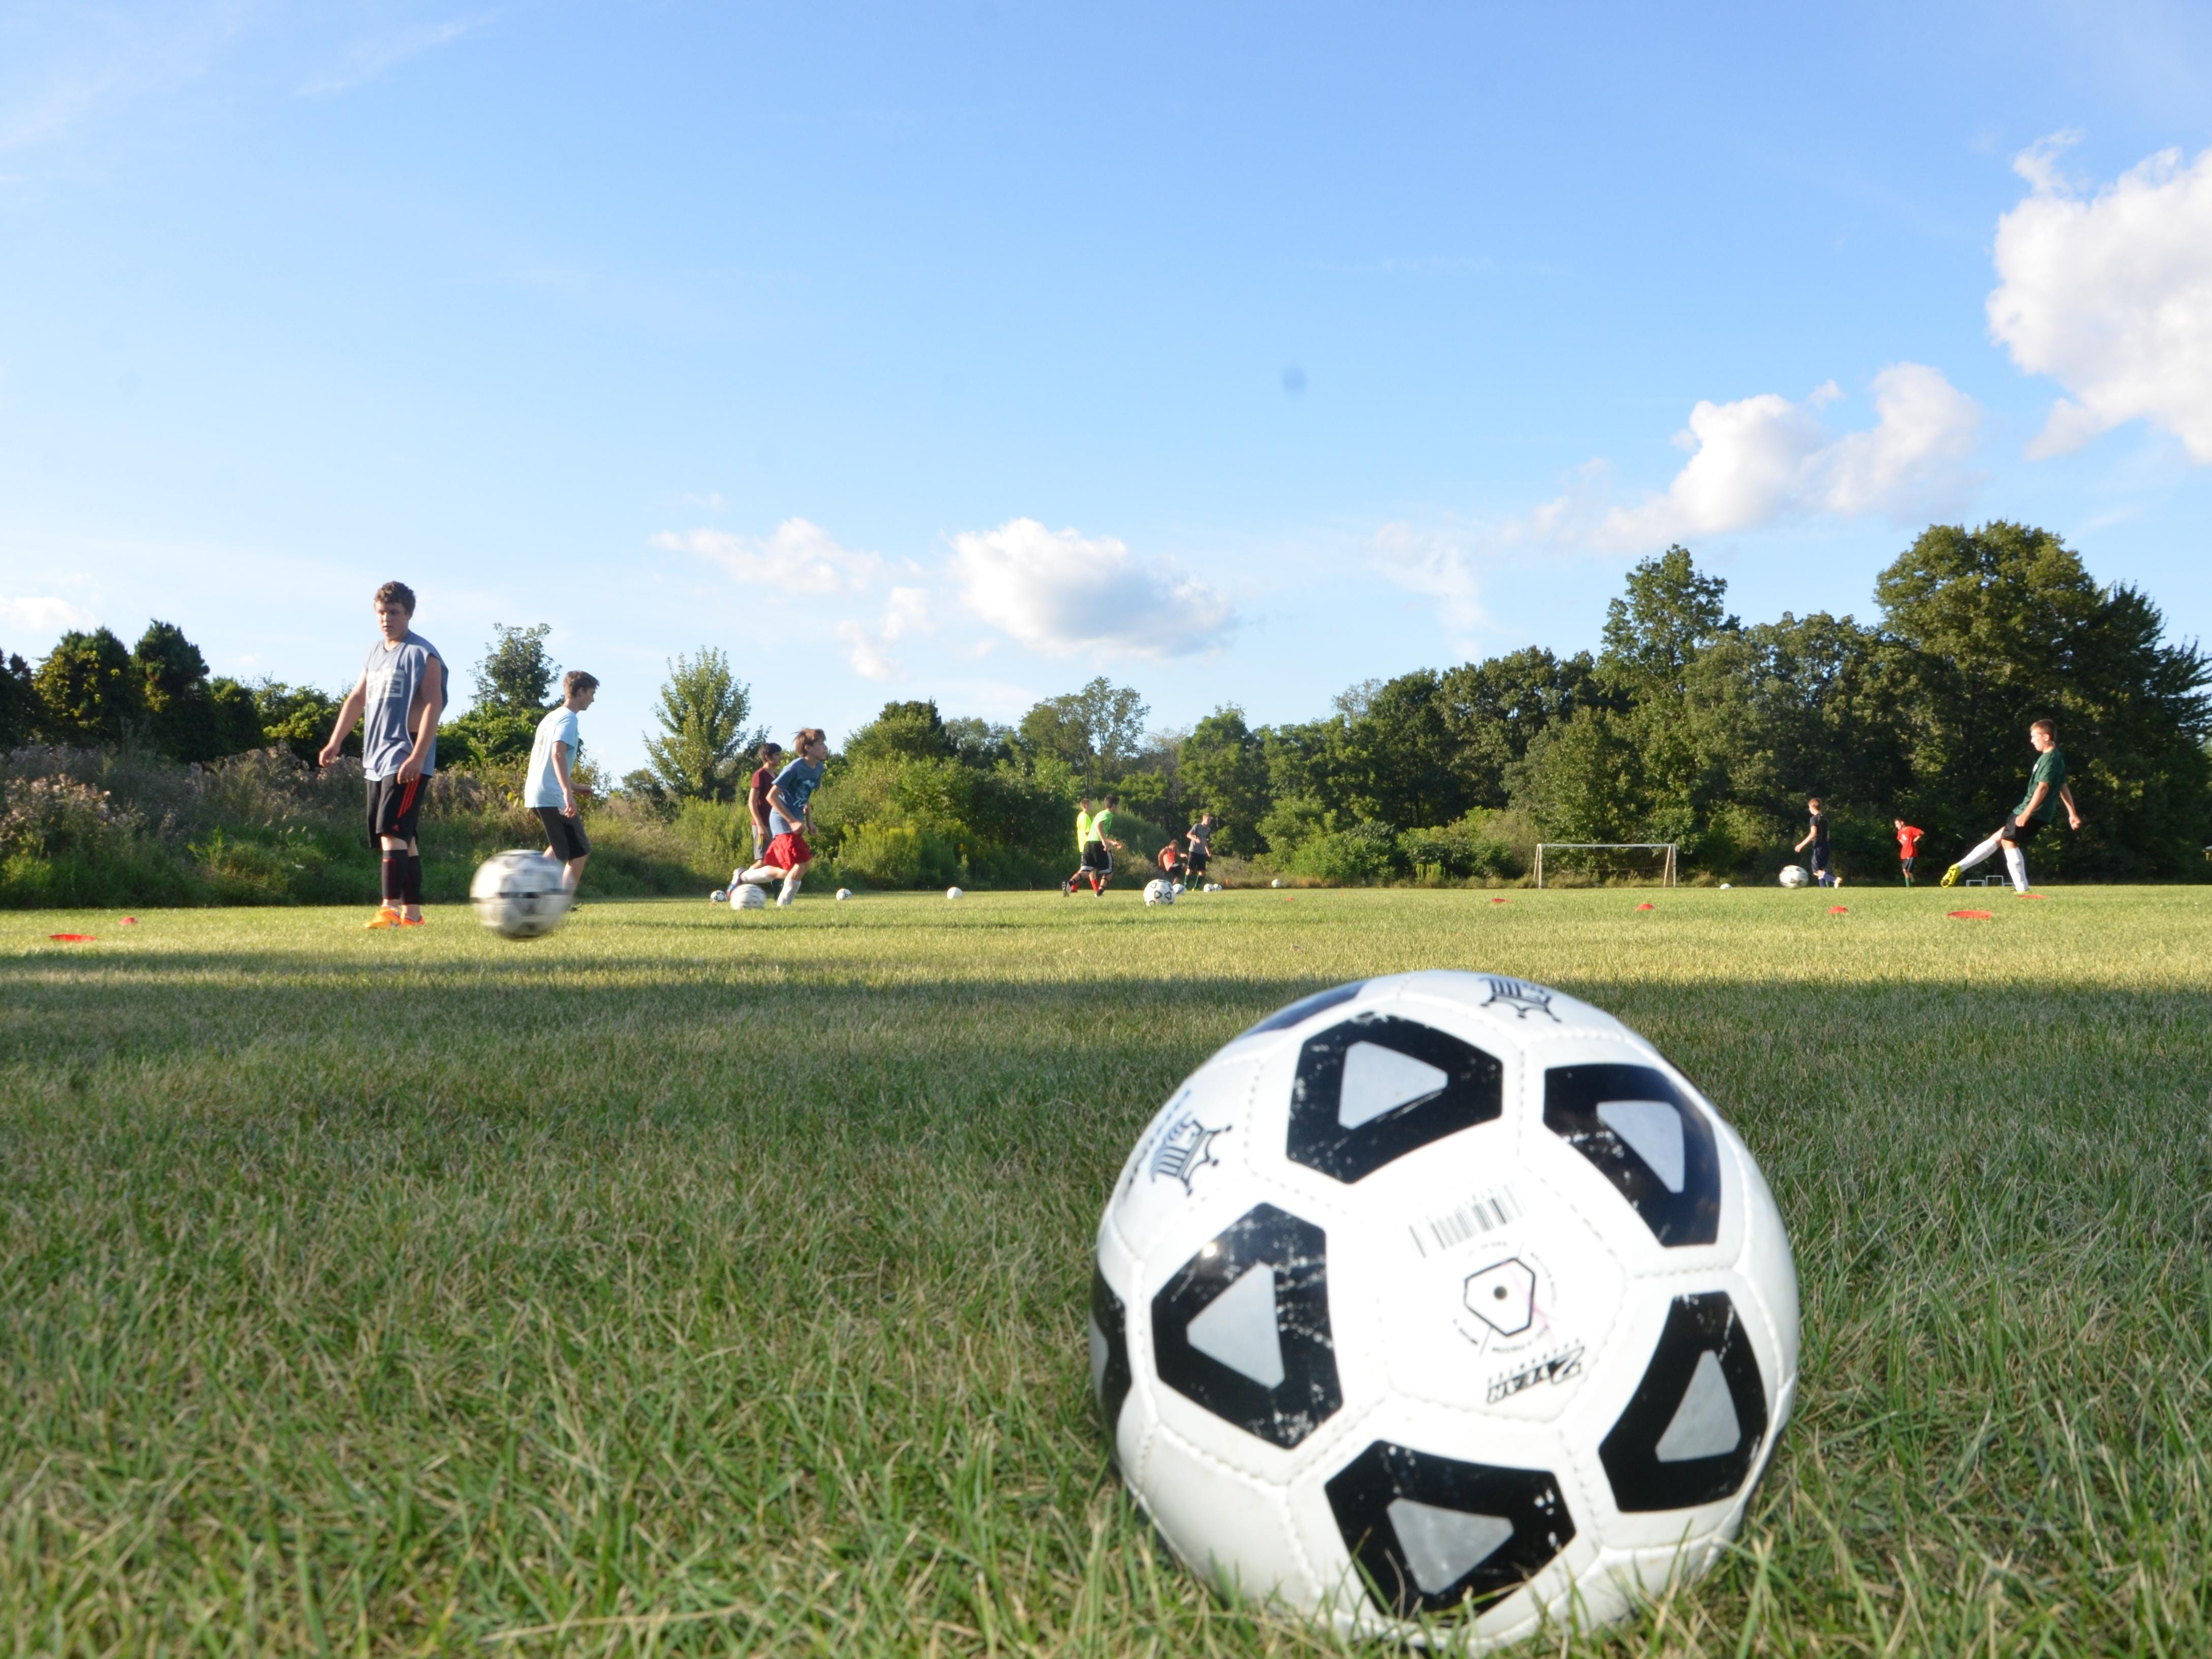 The Pennfield soccer team goes through a drill during the first practice of the season on Wednesday.